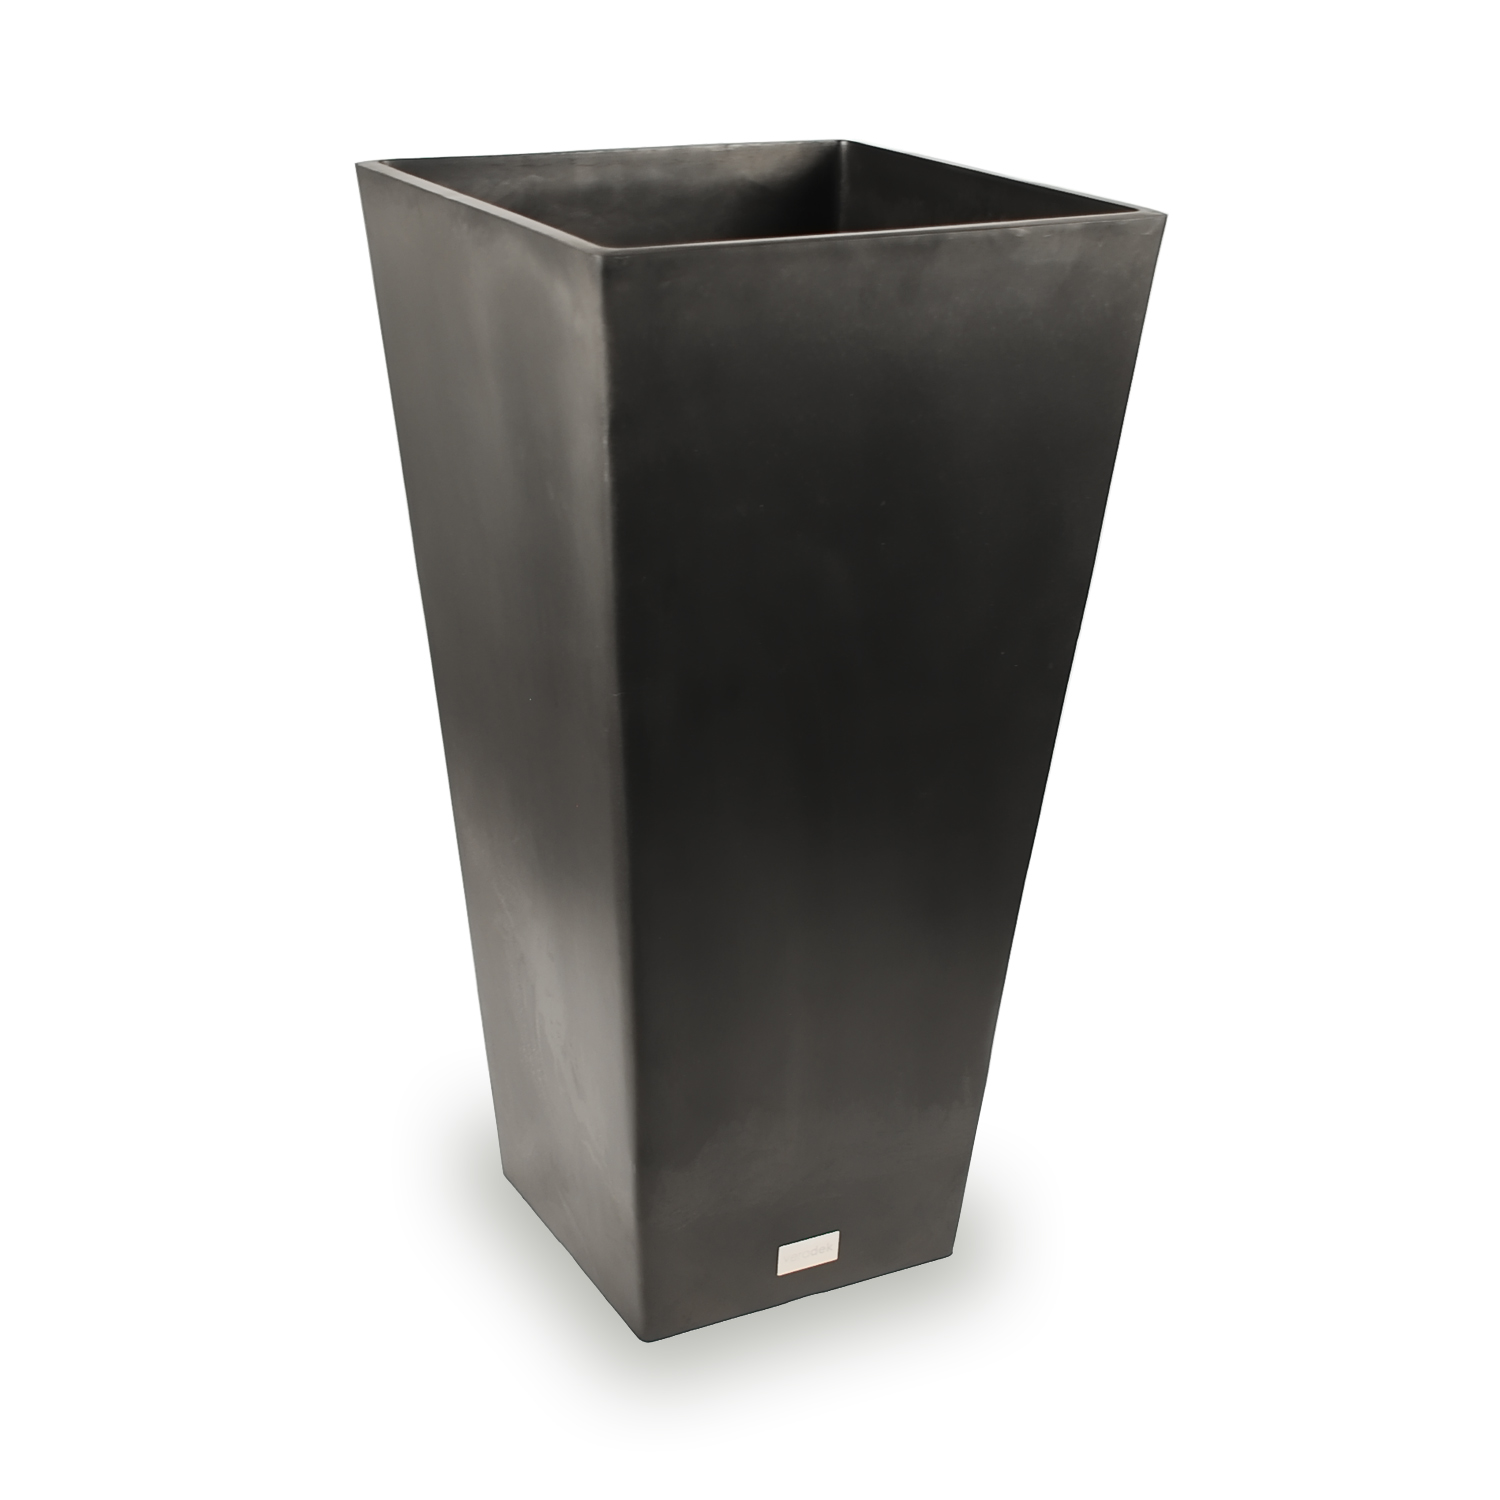 Veradek Midland Tall Square Planter Black 28 in. by Veradek Inc